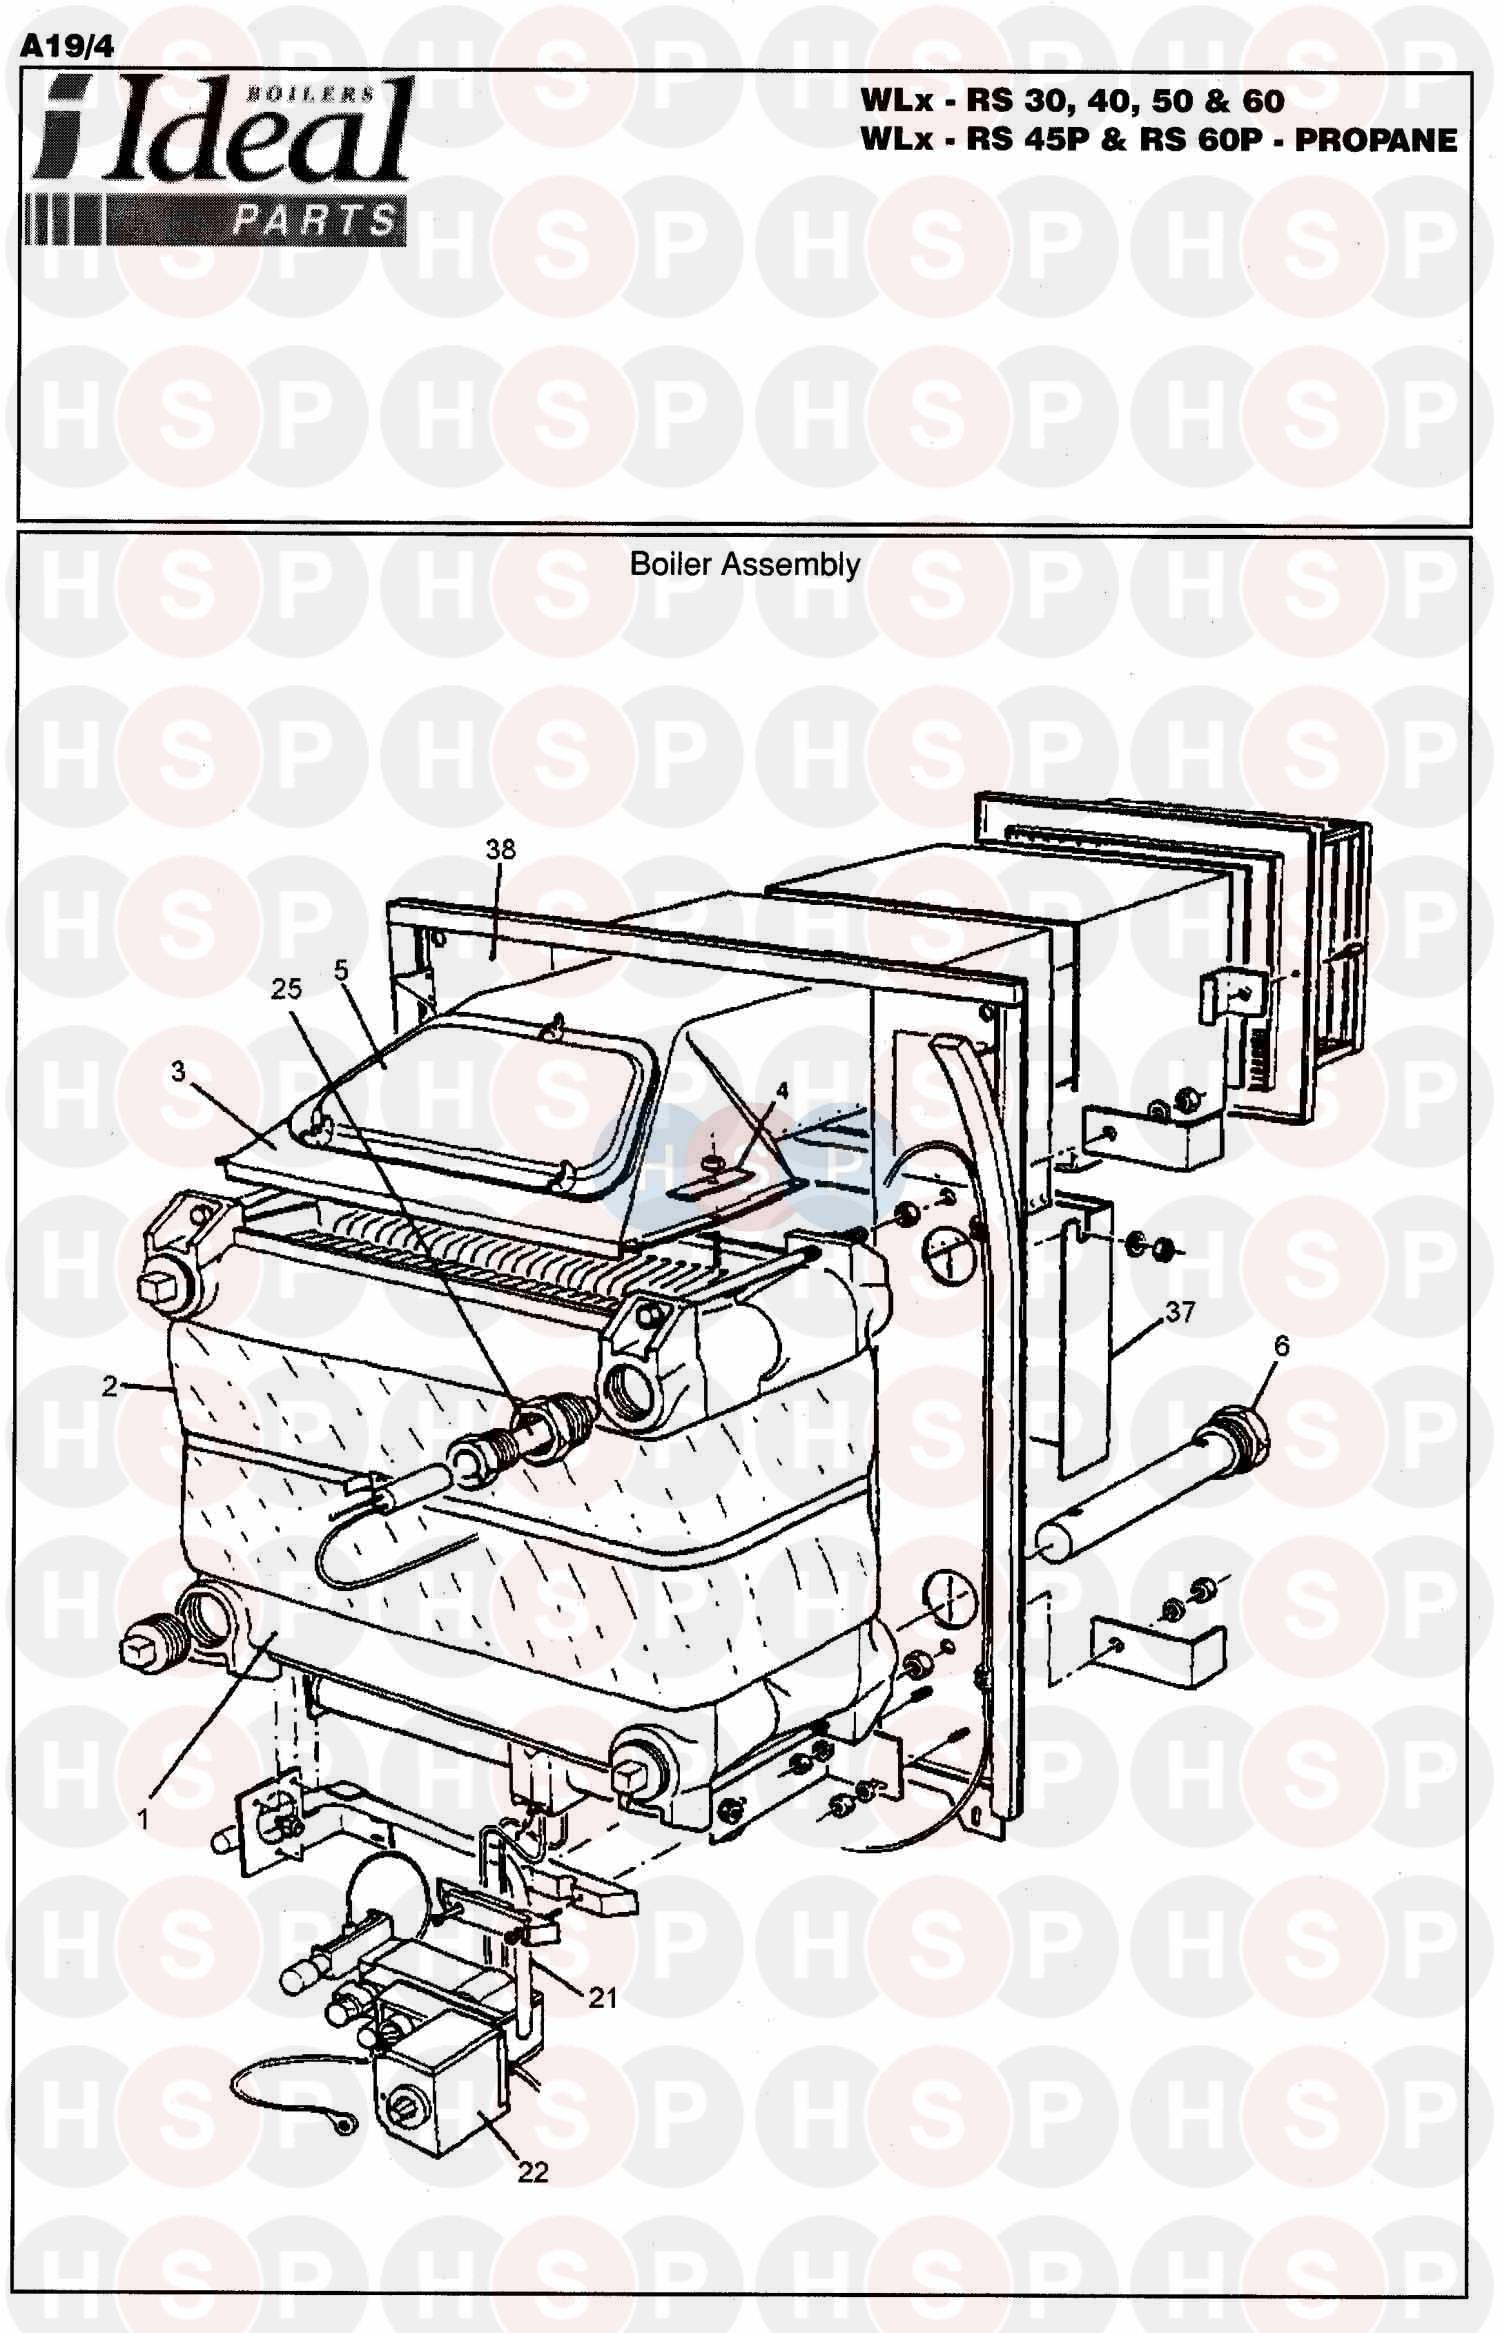 Ideal CONCORD WLX RS 45P Appliance Diagram (BOILER